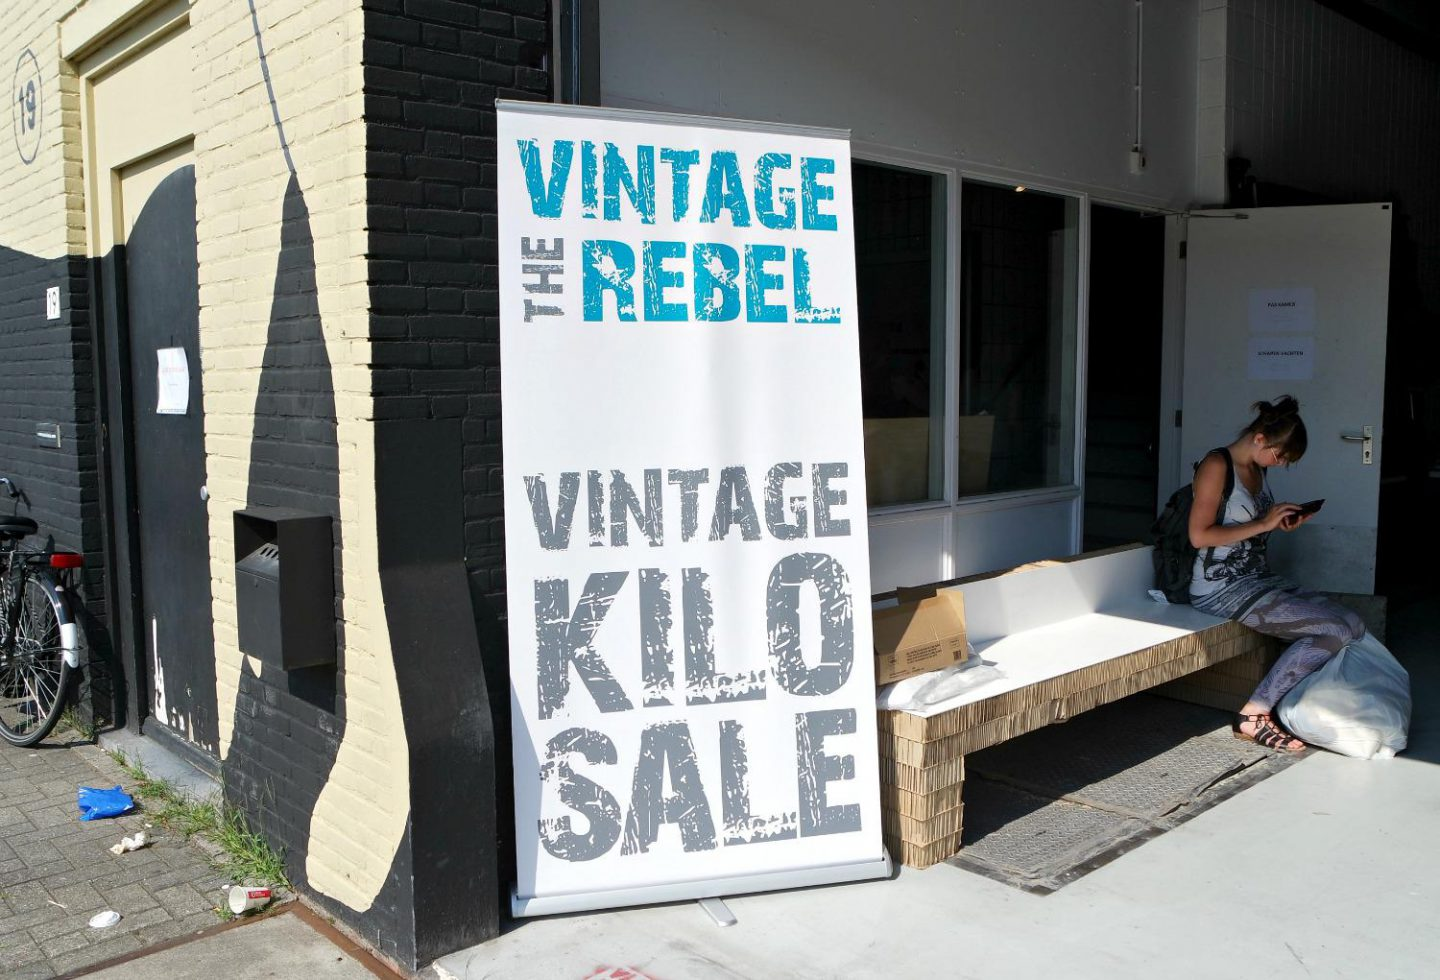 Vintage Kilo Sale bij The Vintage Rebel